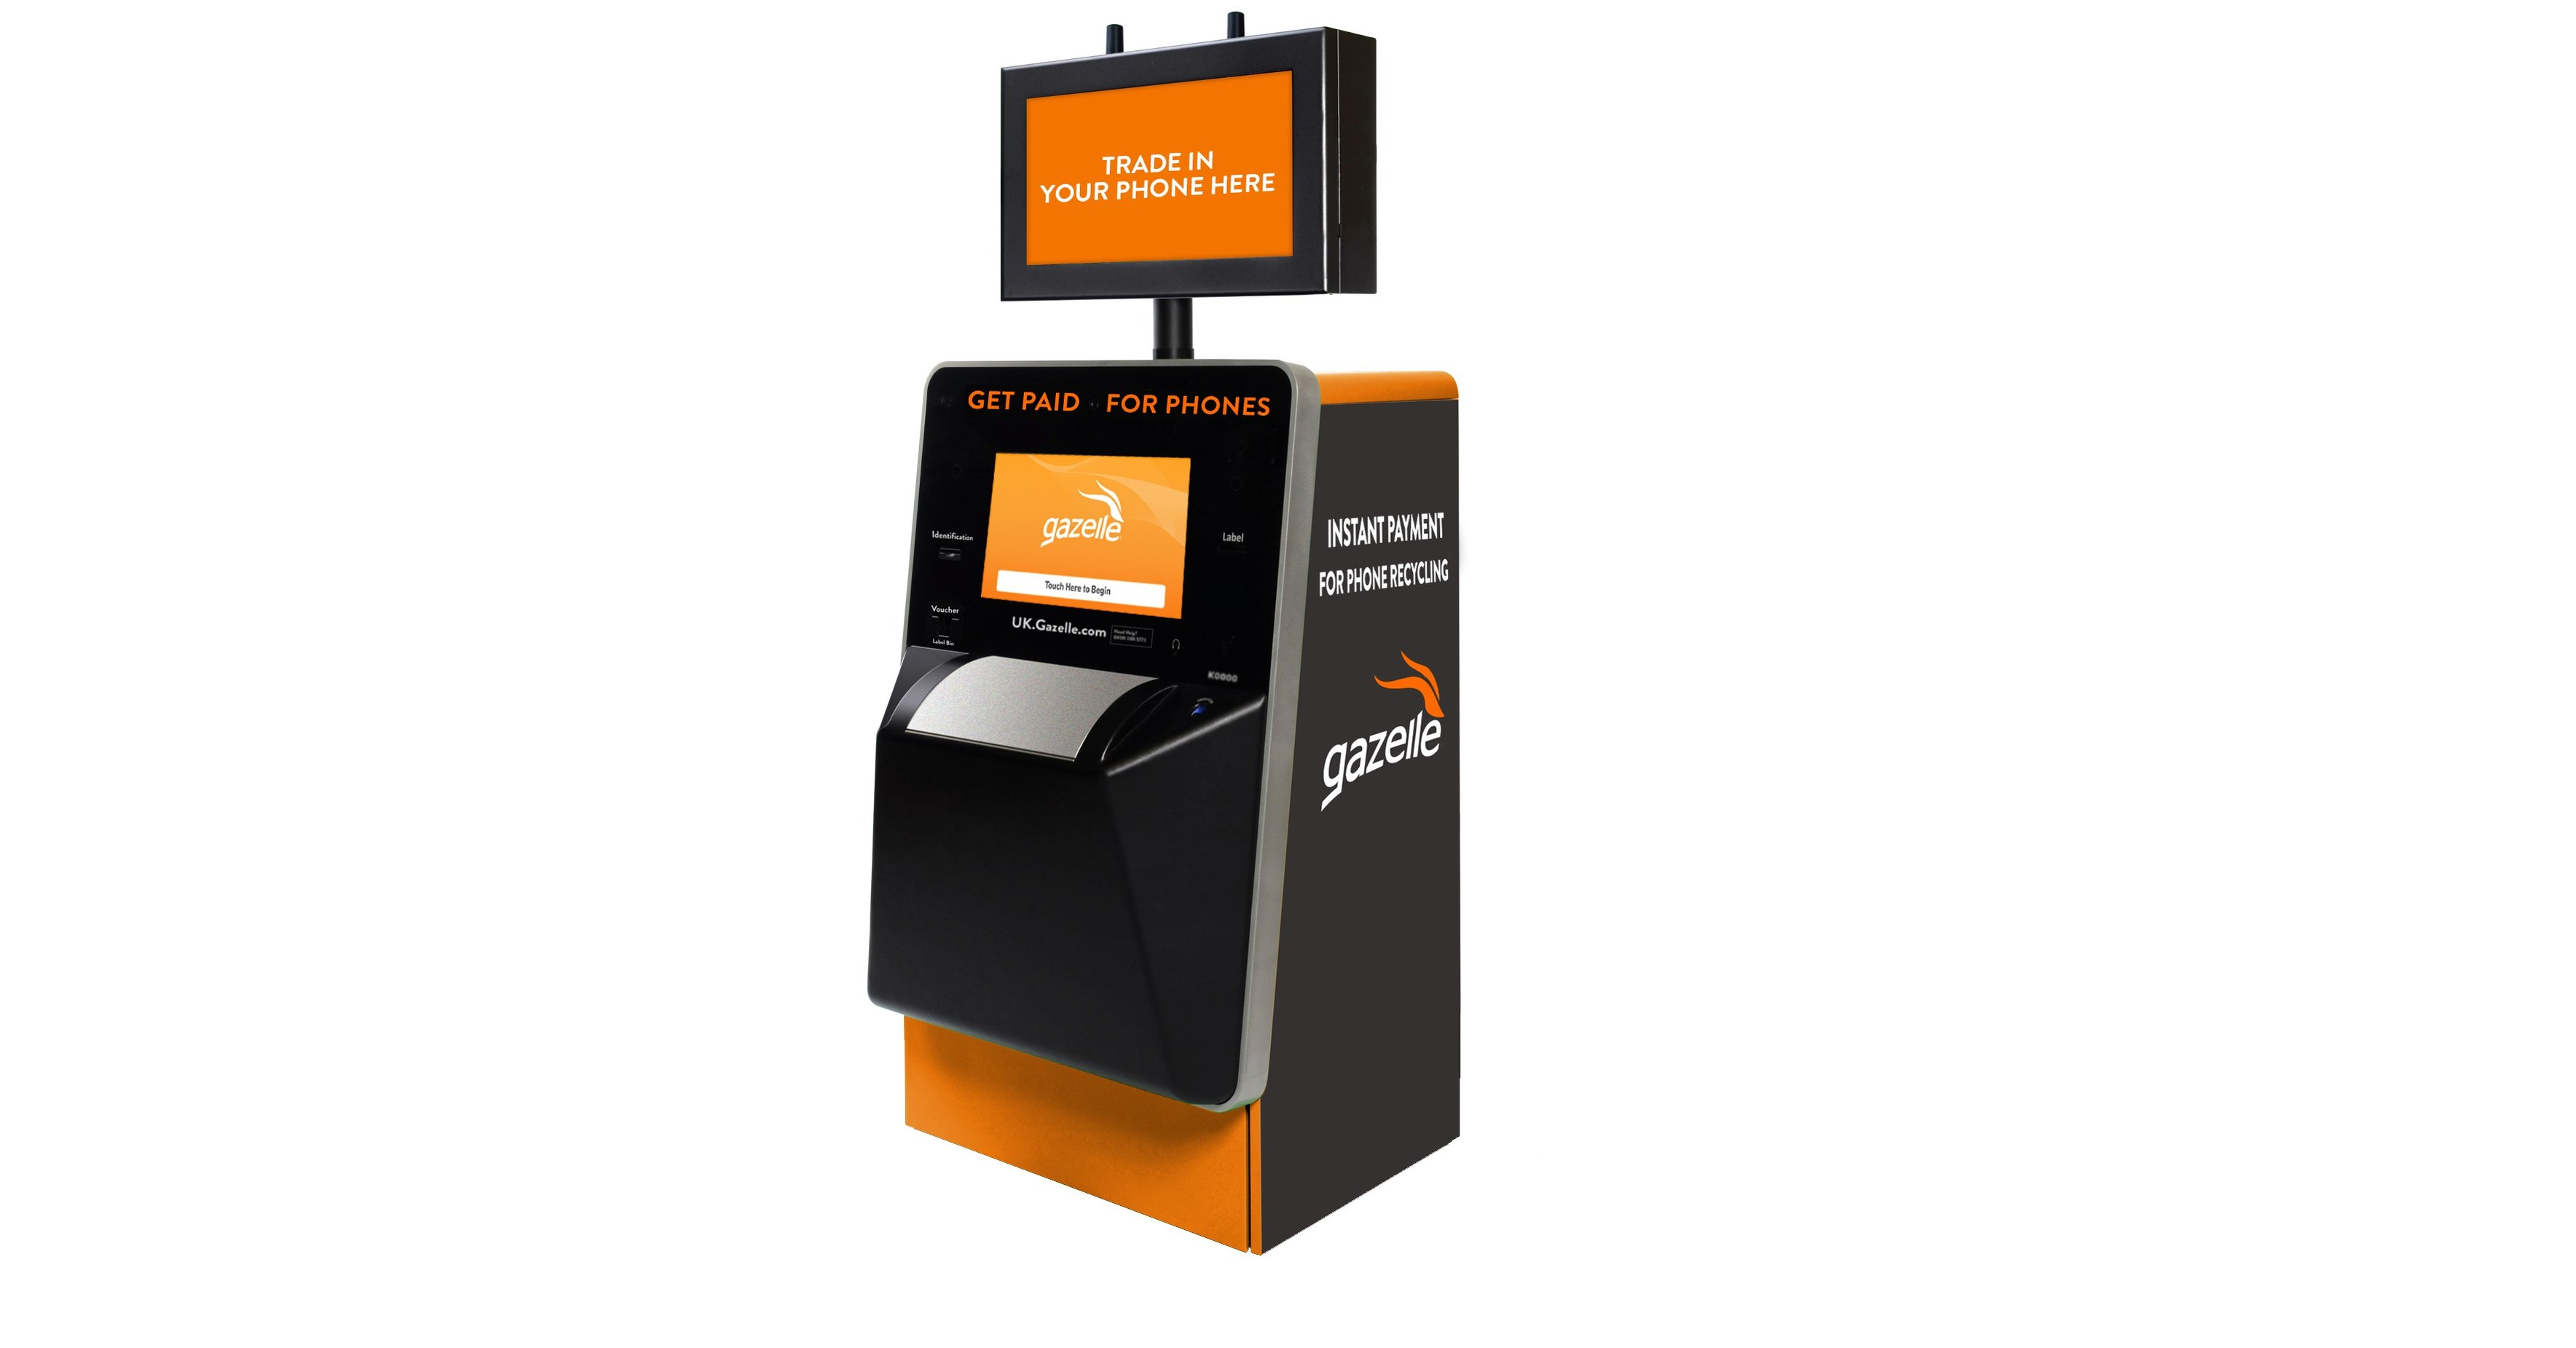 Gazelle Launches UK Self-service Kiosks for Recycling and Reusing Phones